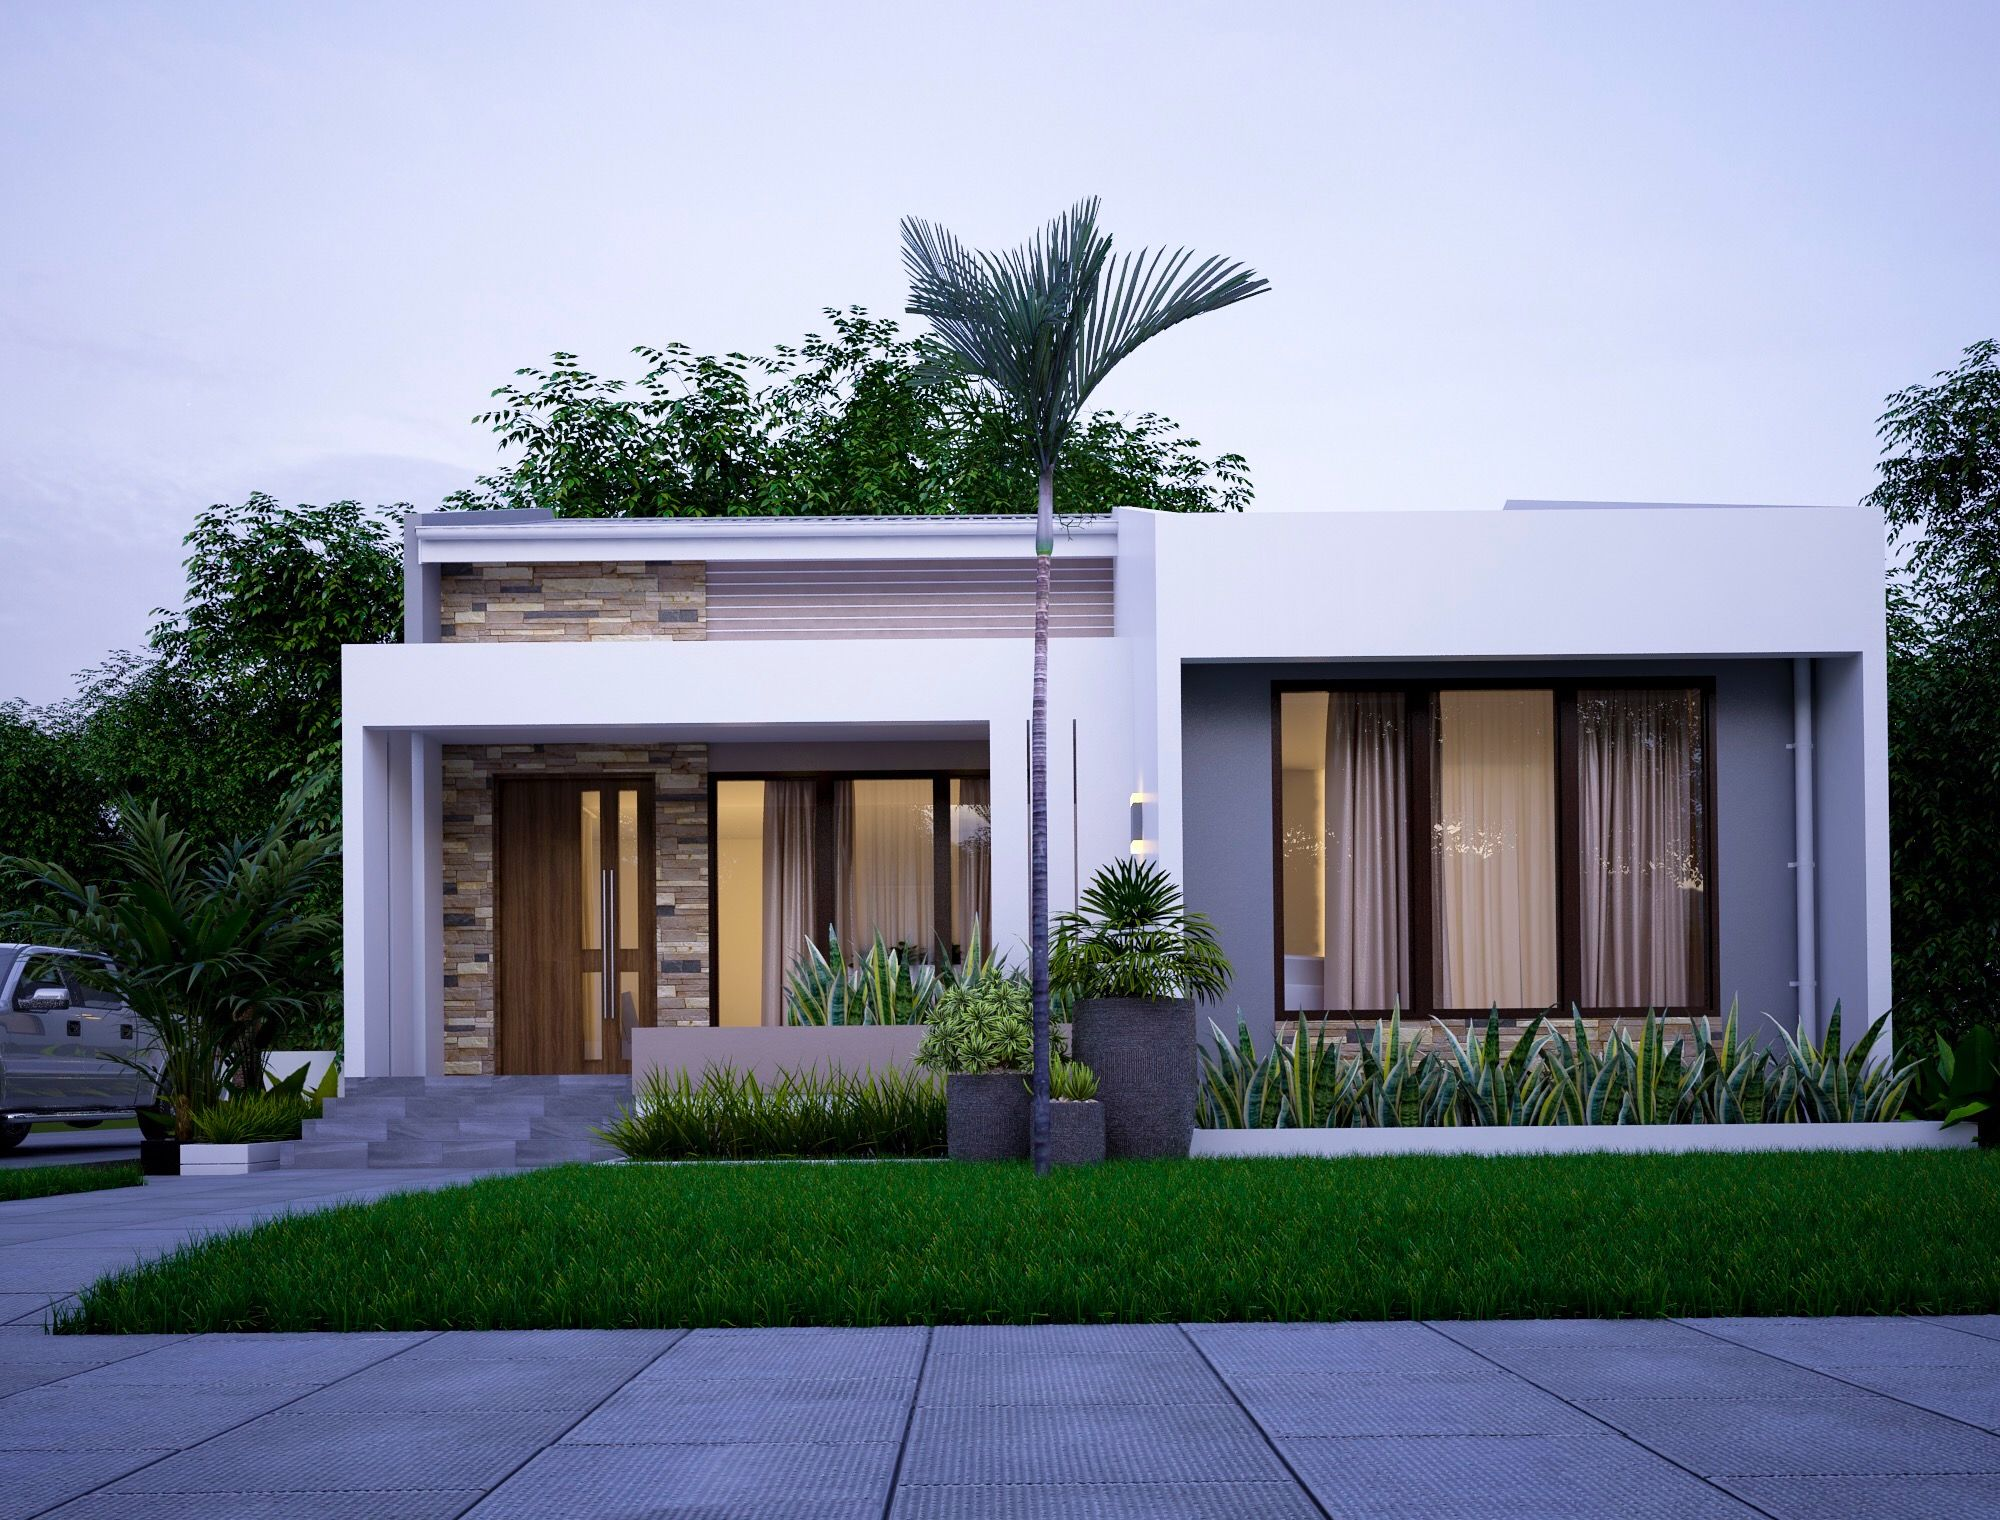 Home design by egmdesigns bungalow house small my also bedrooms plan   plans rh pinterest